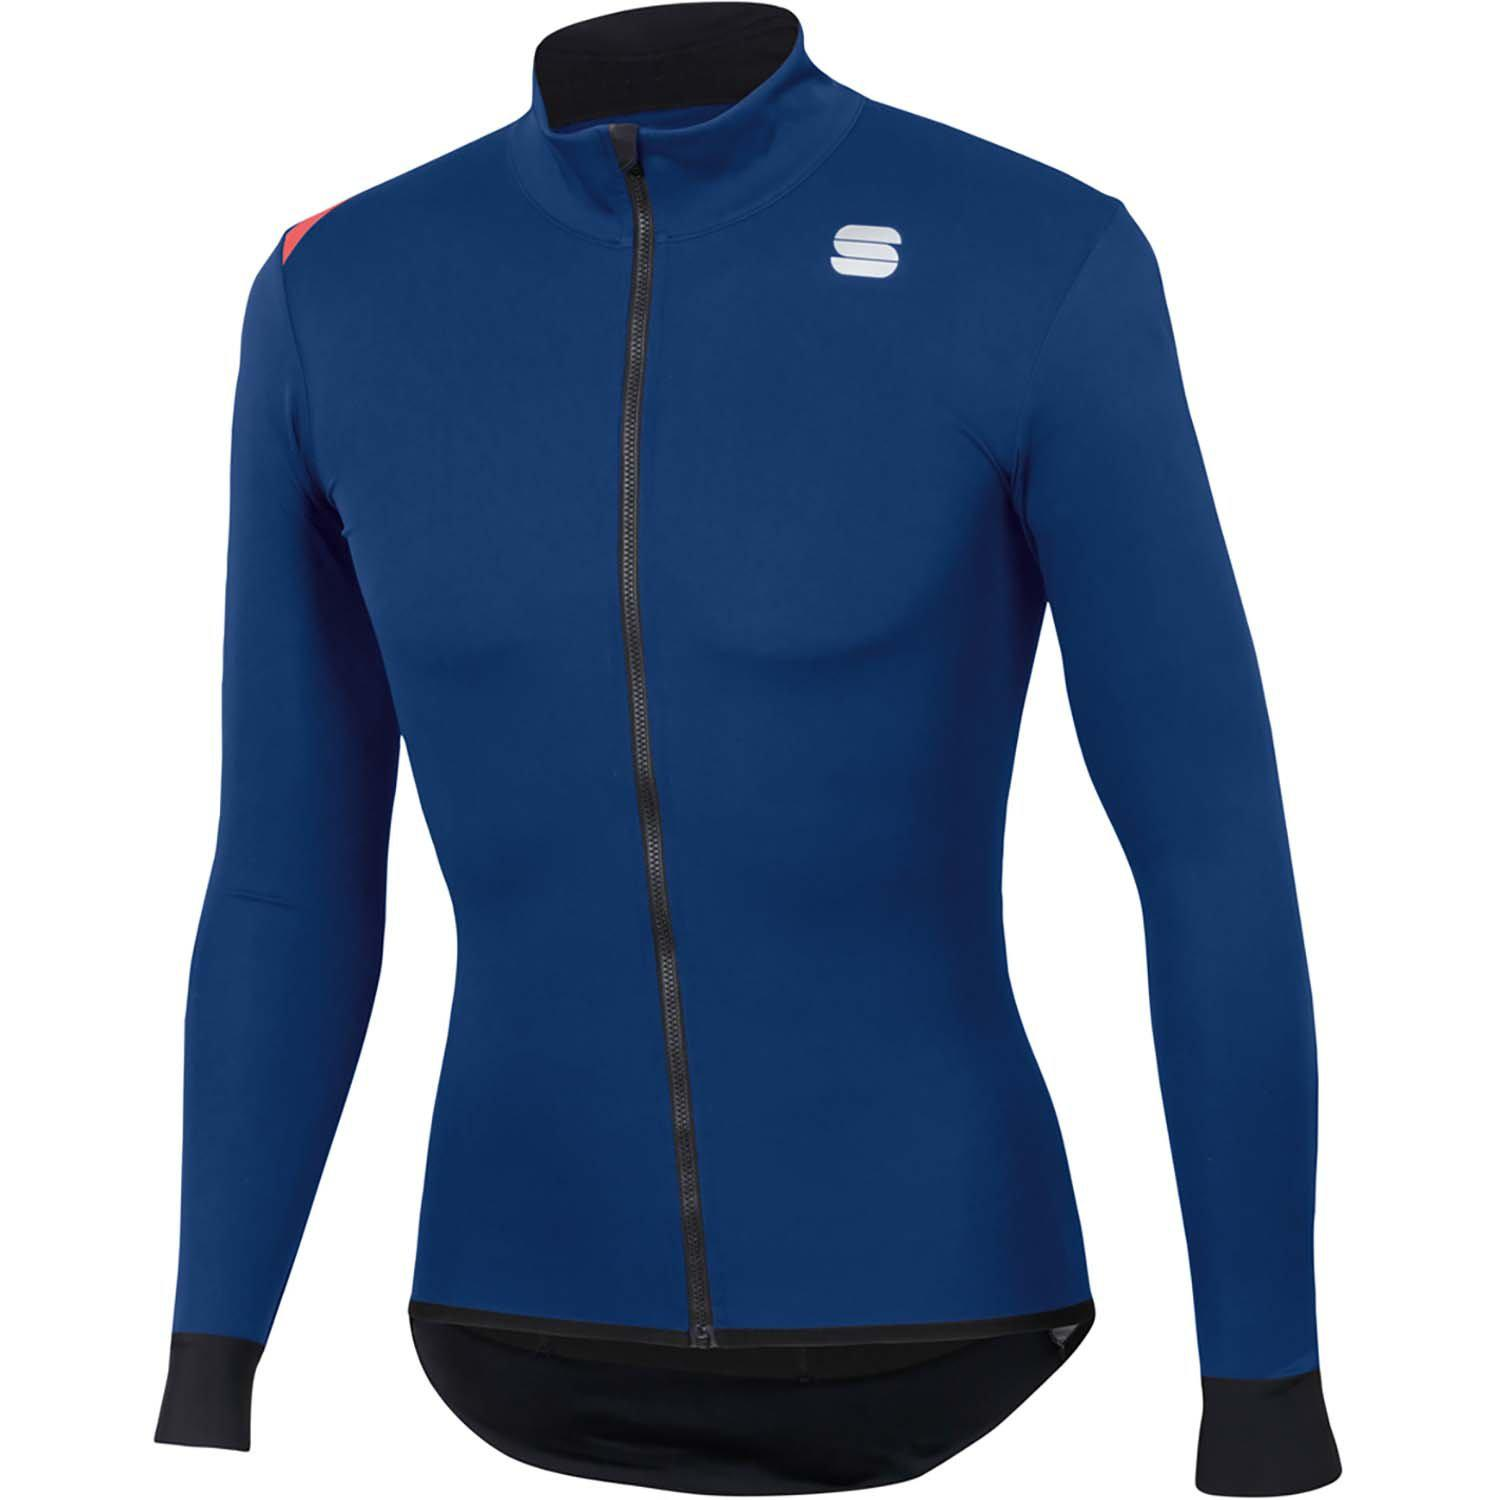 Sportful-Sportful Fiandre Light NoRain Jacket--saddleback-elite-performance-cycling